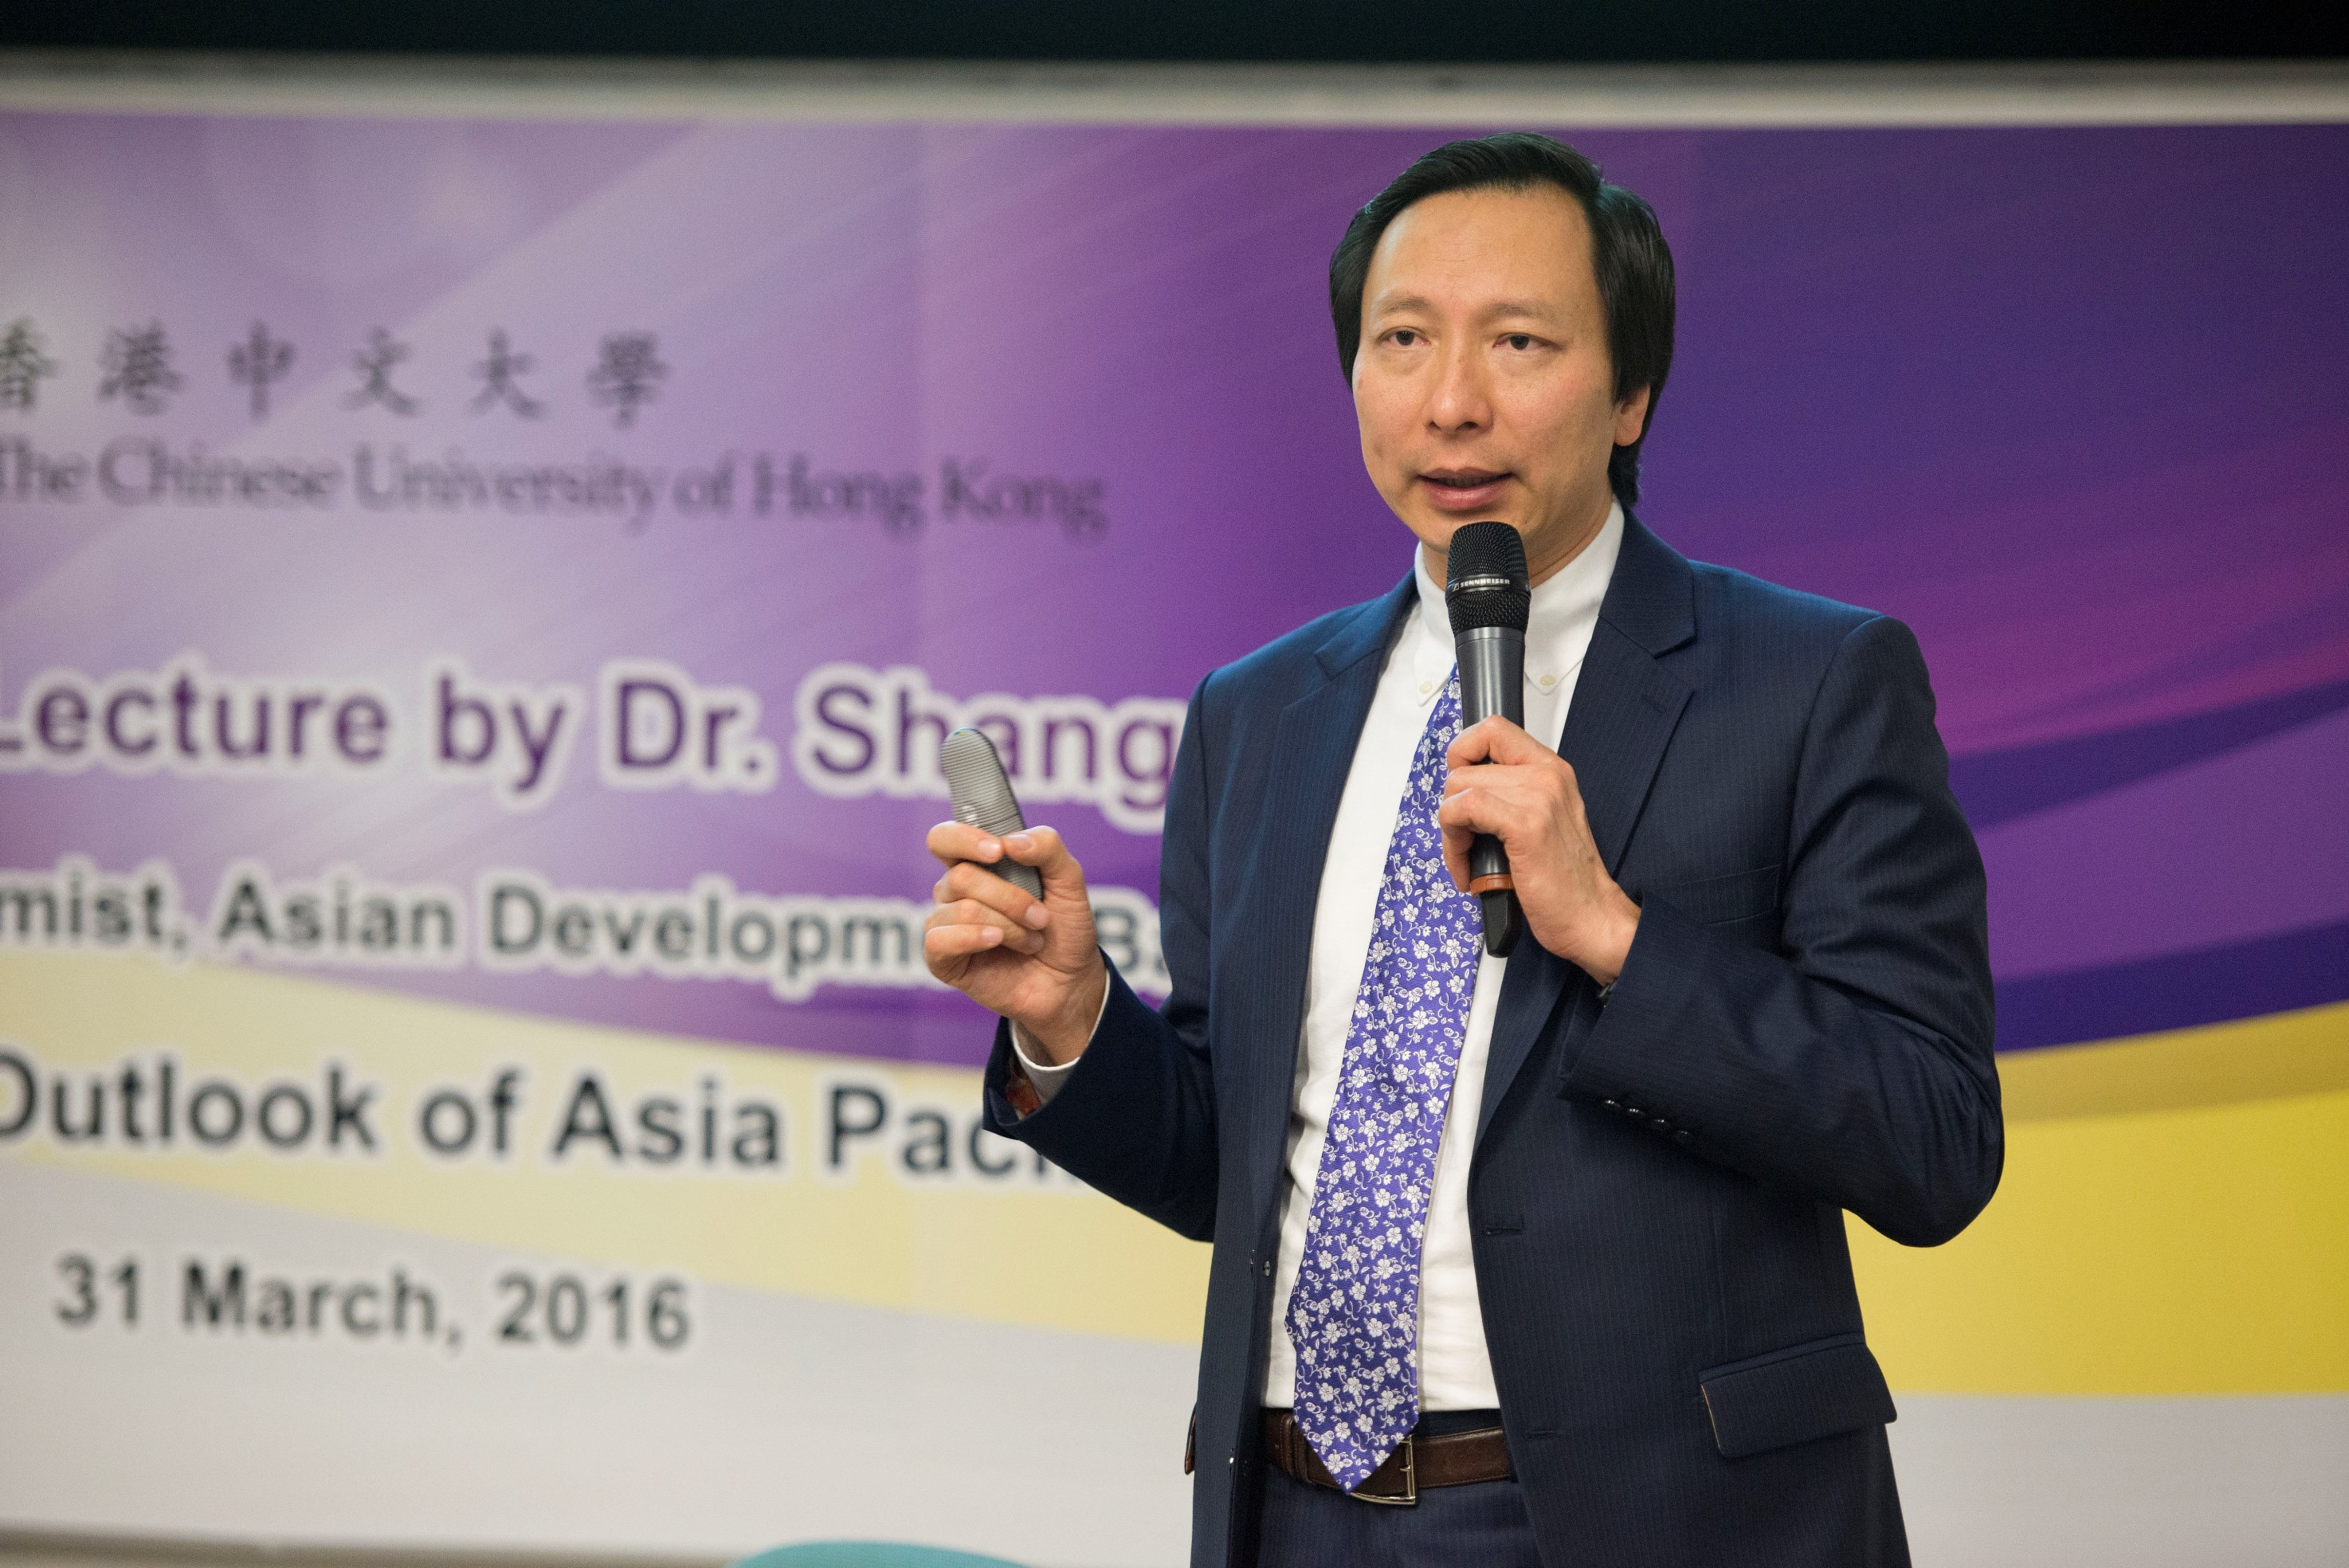 Dr. Shang-Jin Wei, Chief Economist of ADB, delivers a lecture at CUHK.